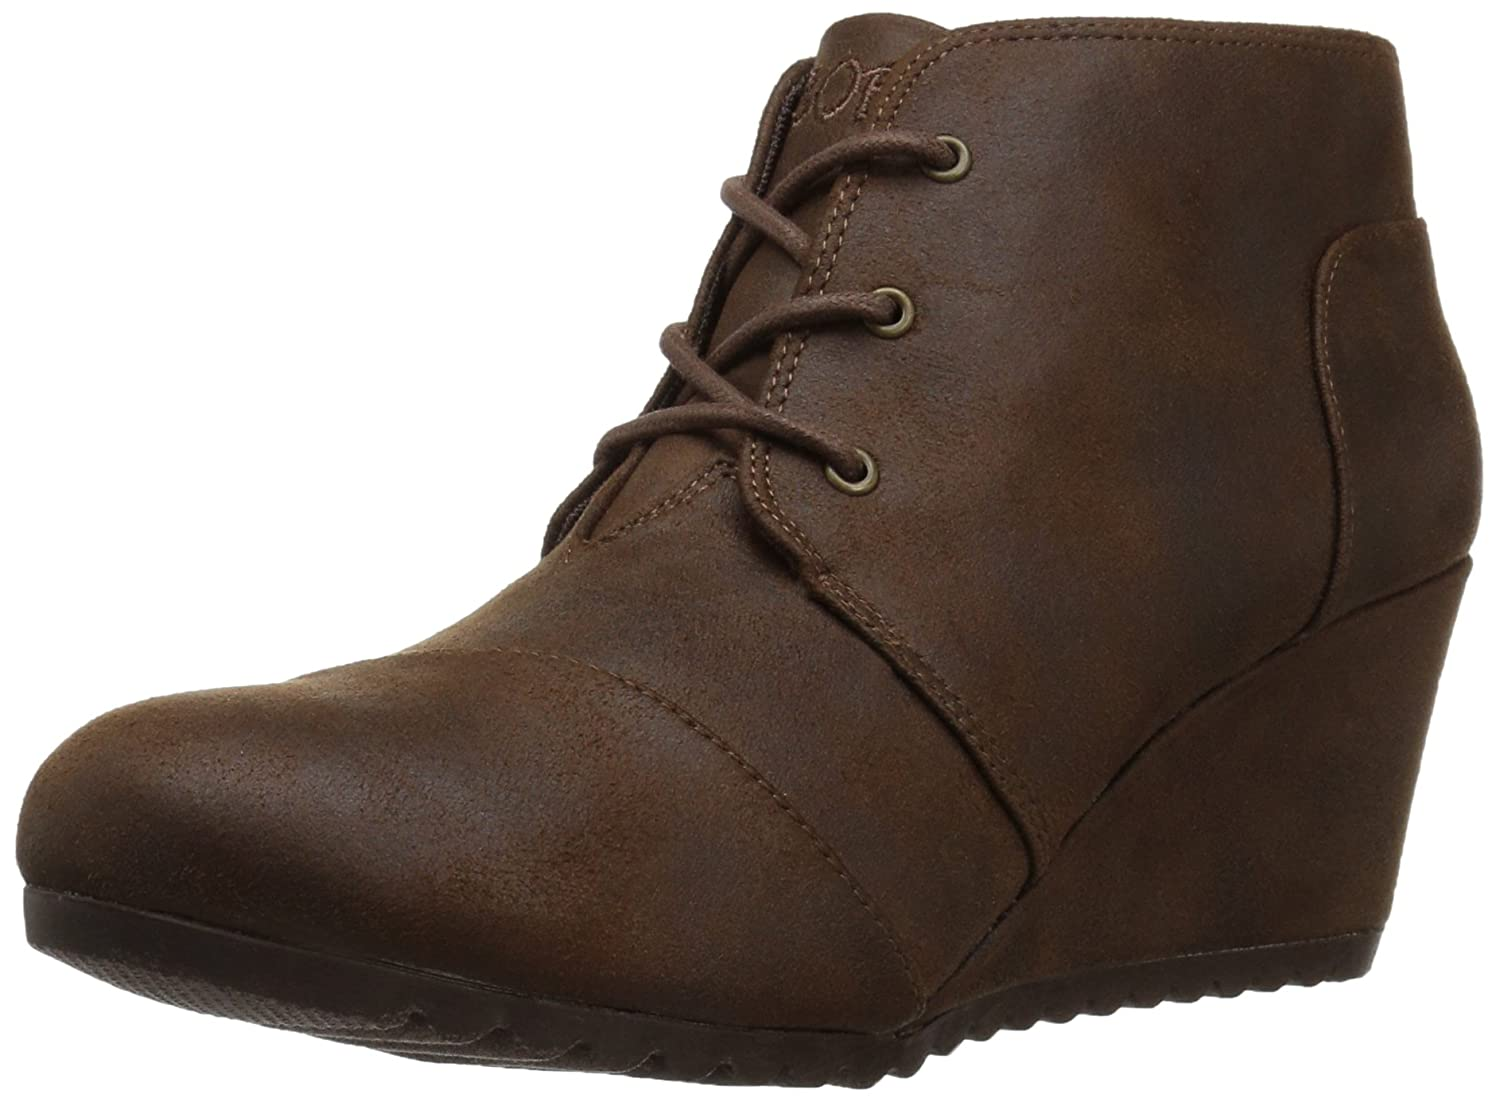 Brown Skechers Women's HIGH-Notes - Bell Kick Ankle Boots